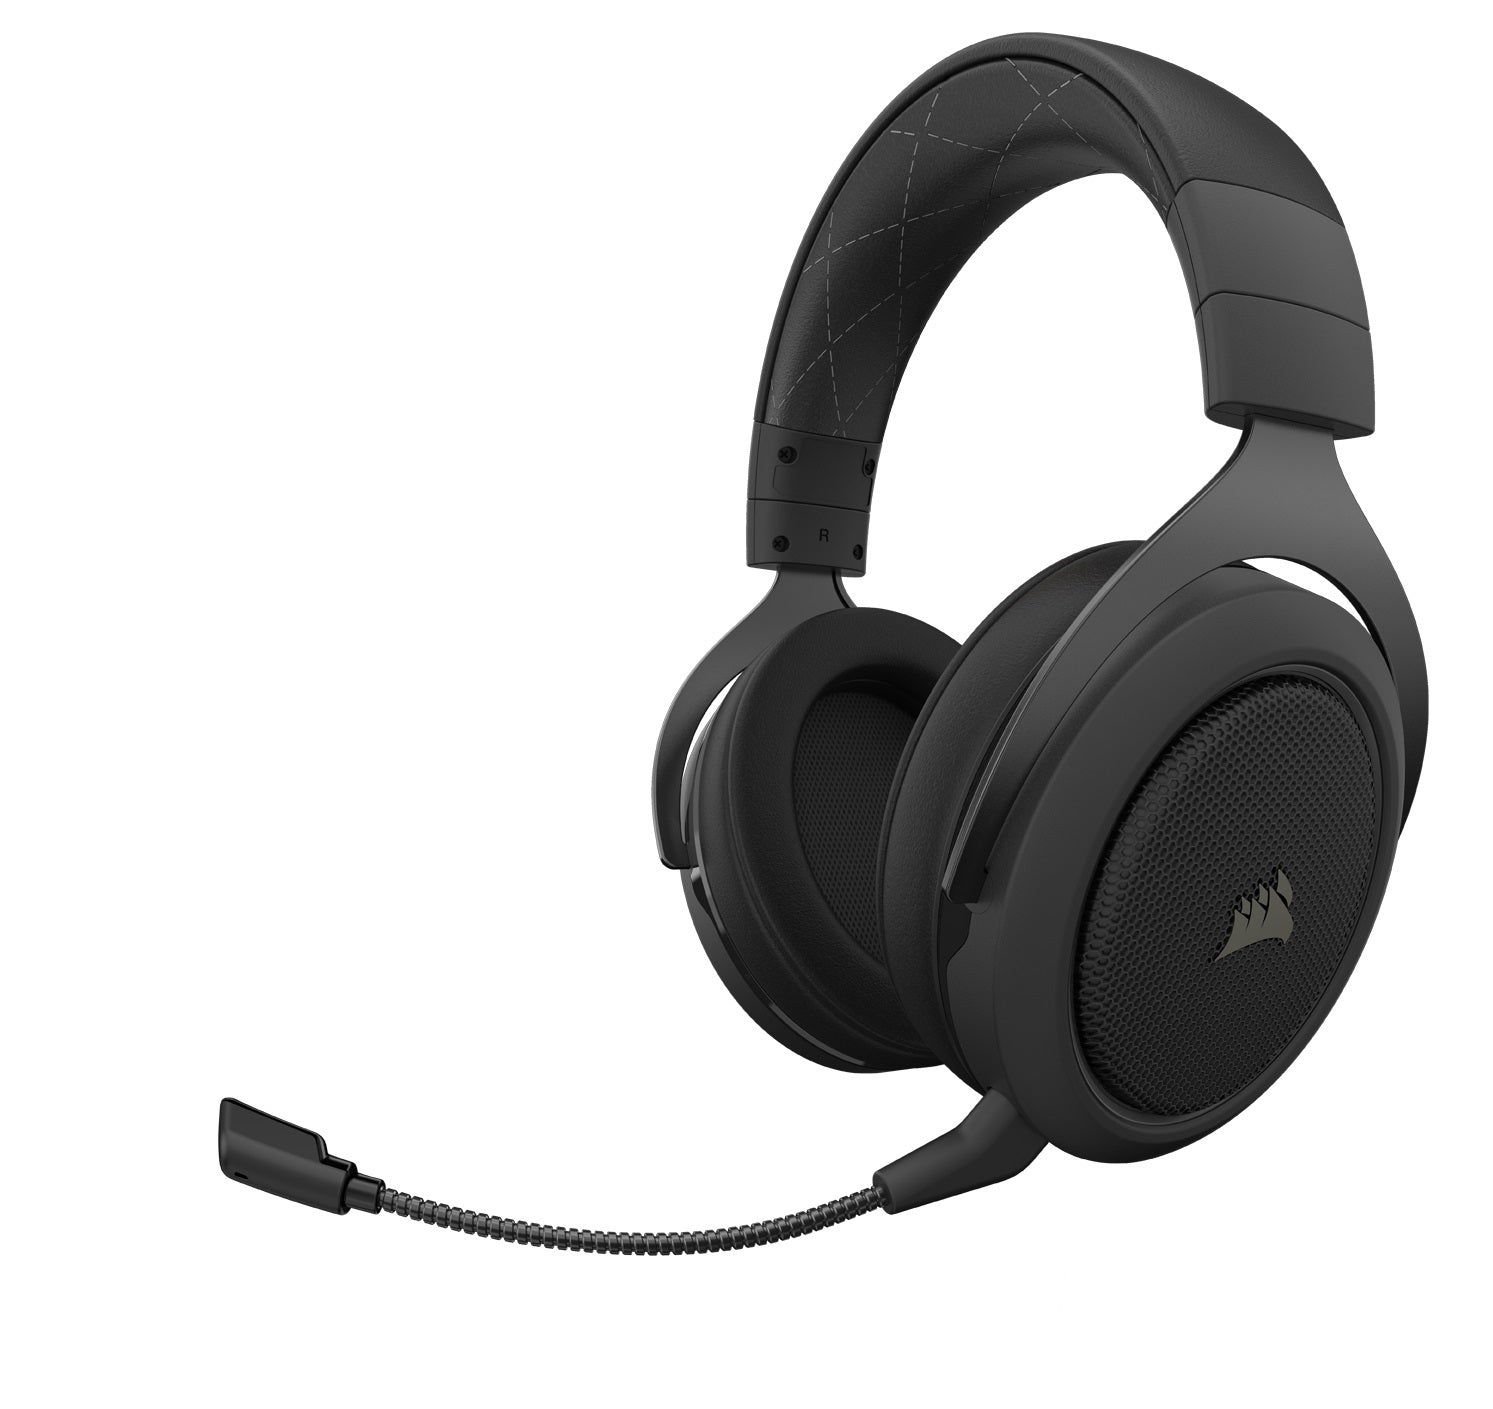 Corsair HS70 Pro Wireless Gaming Headset (Carbon) - PC Games